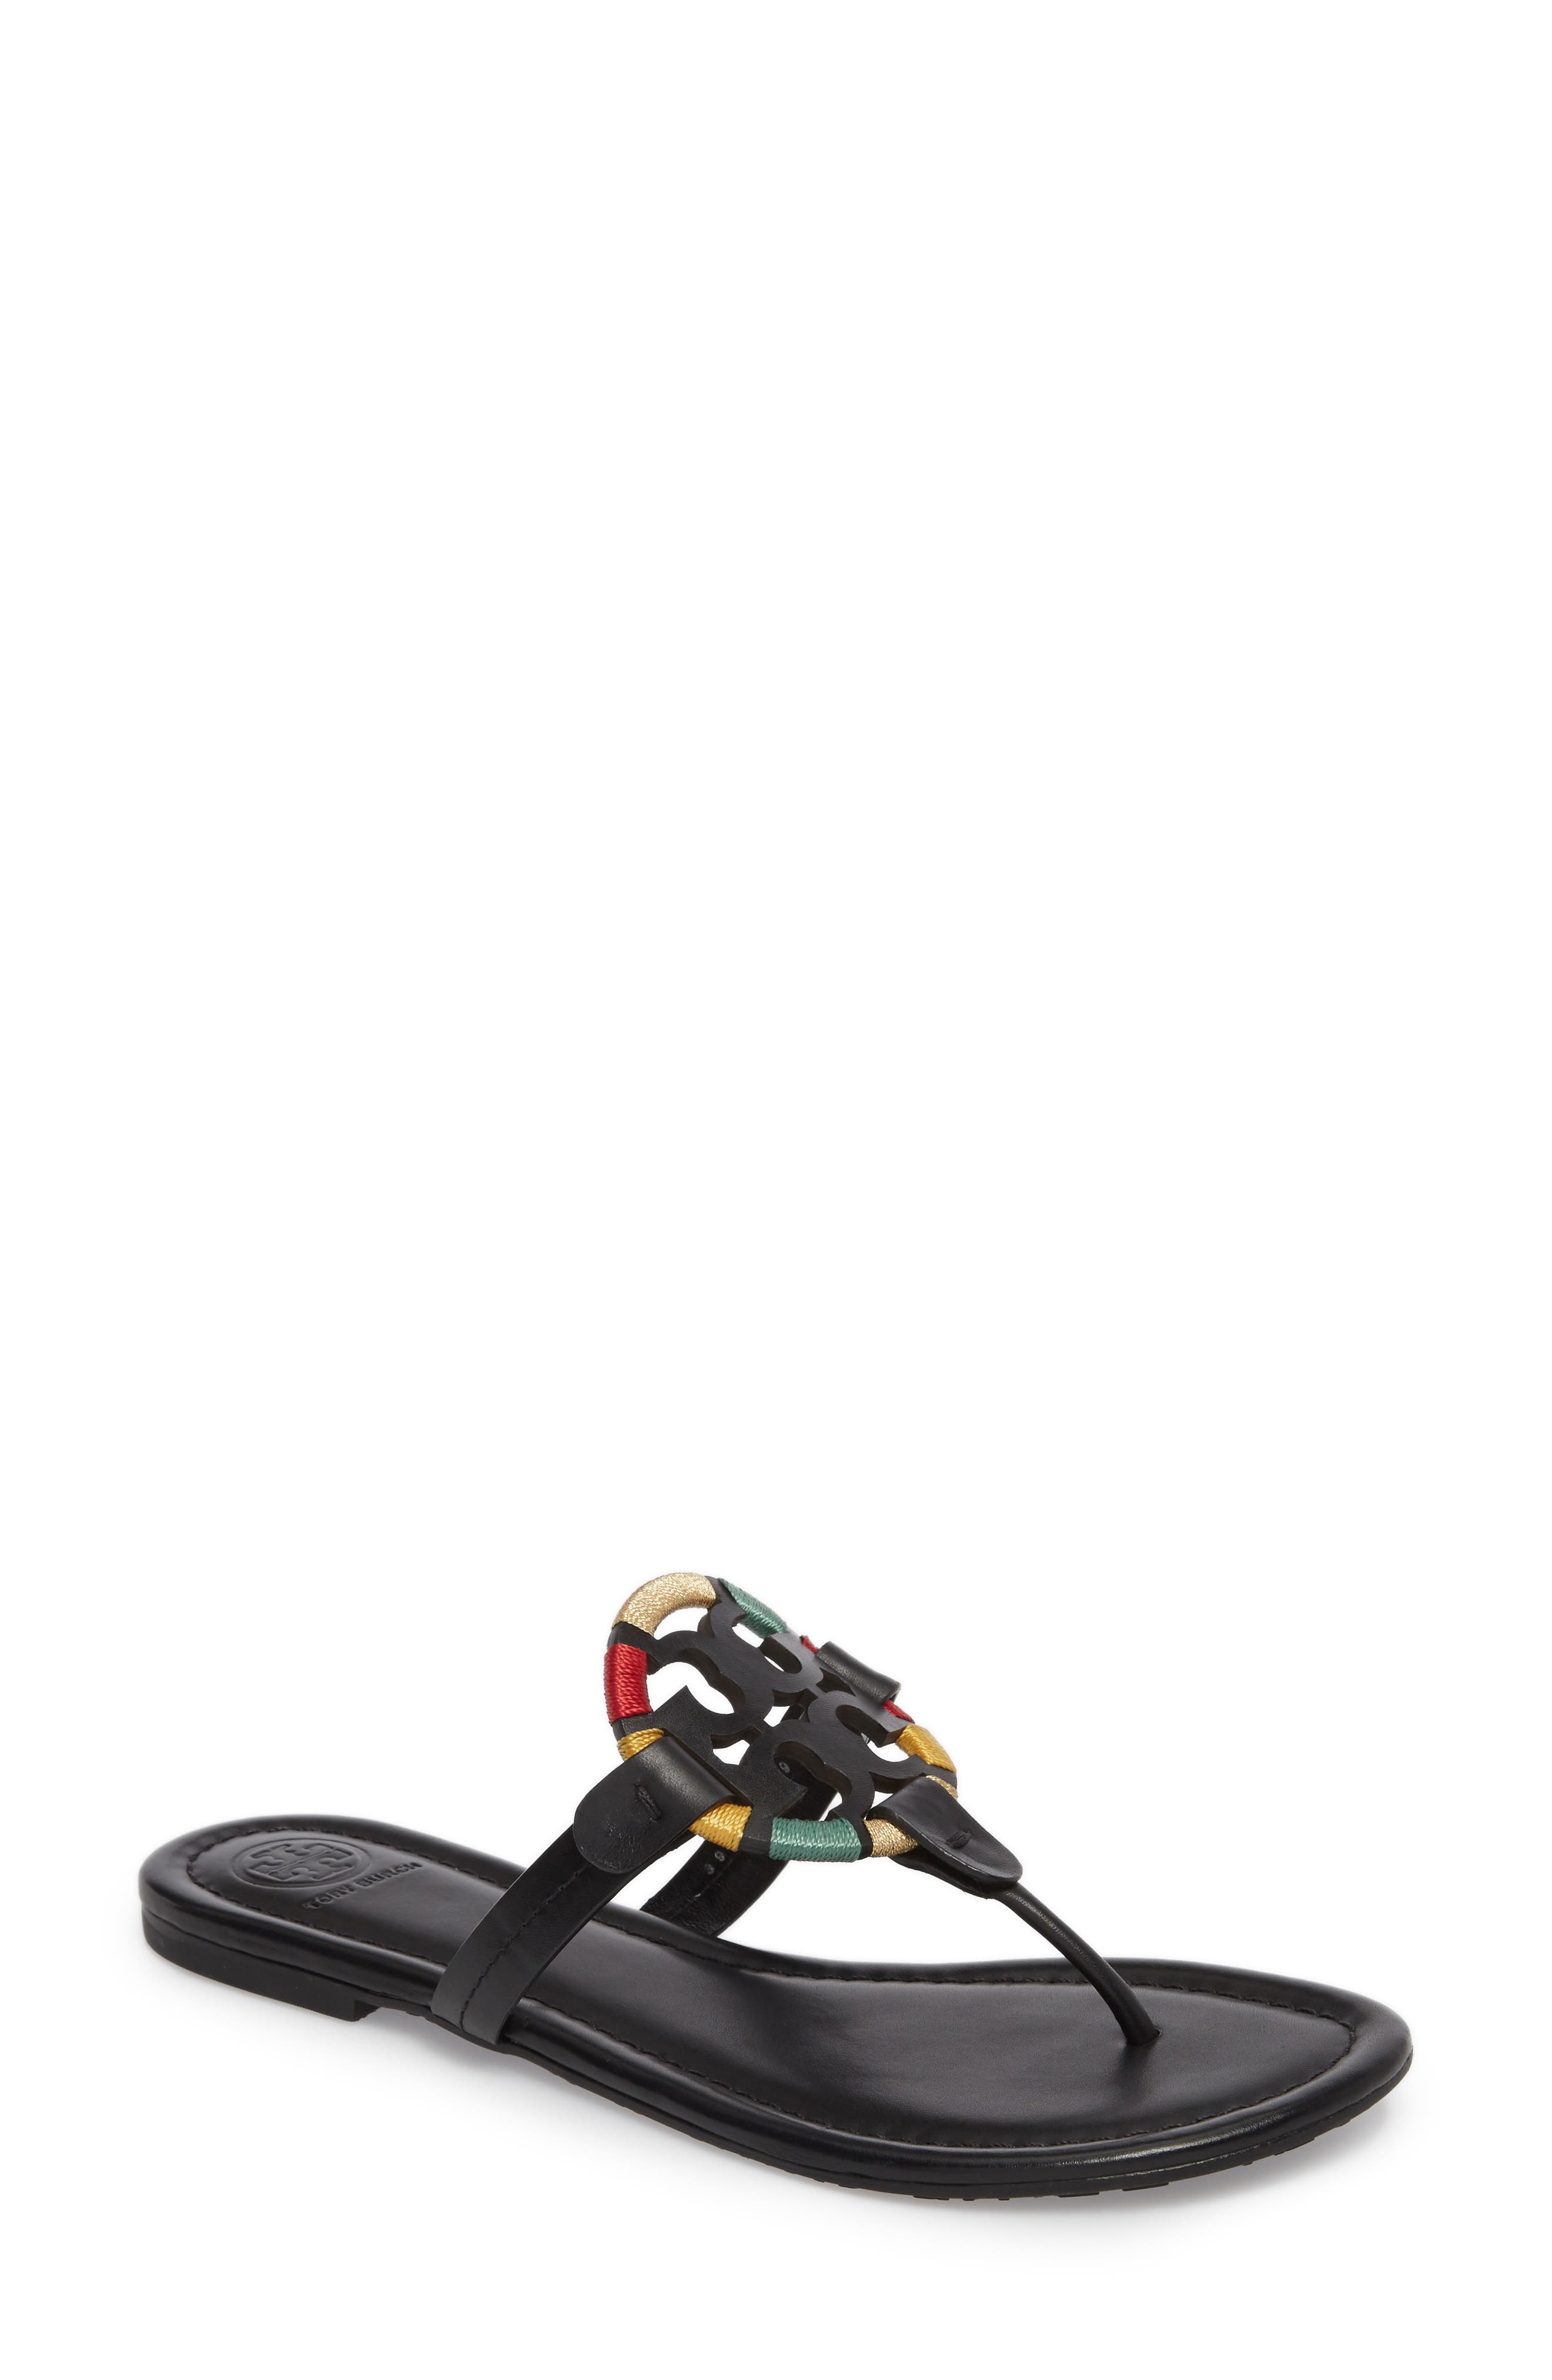 Alternate Image 1 Selected - Tory Burch Miller Sandal (Women)